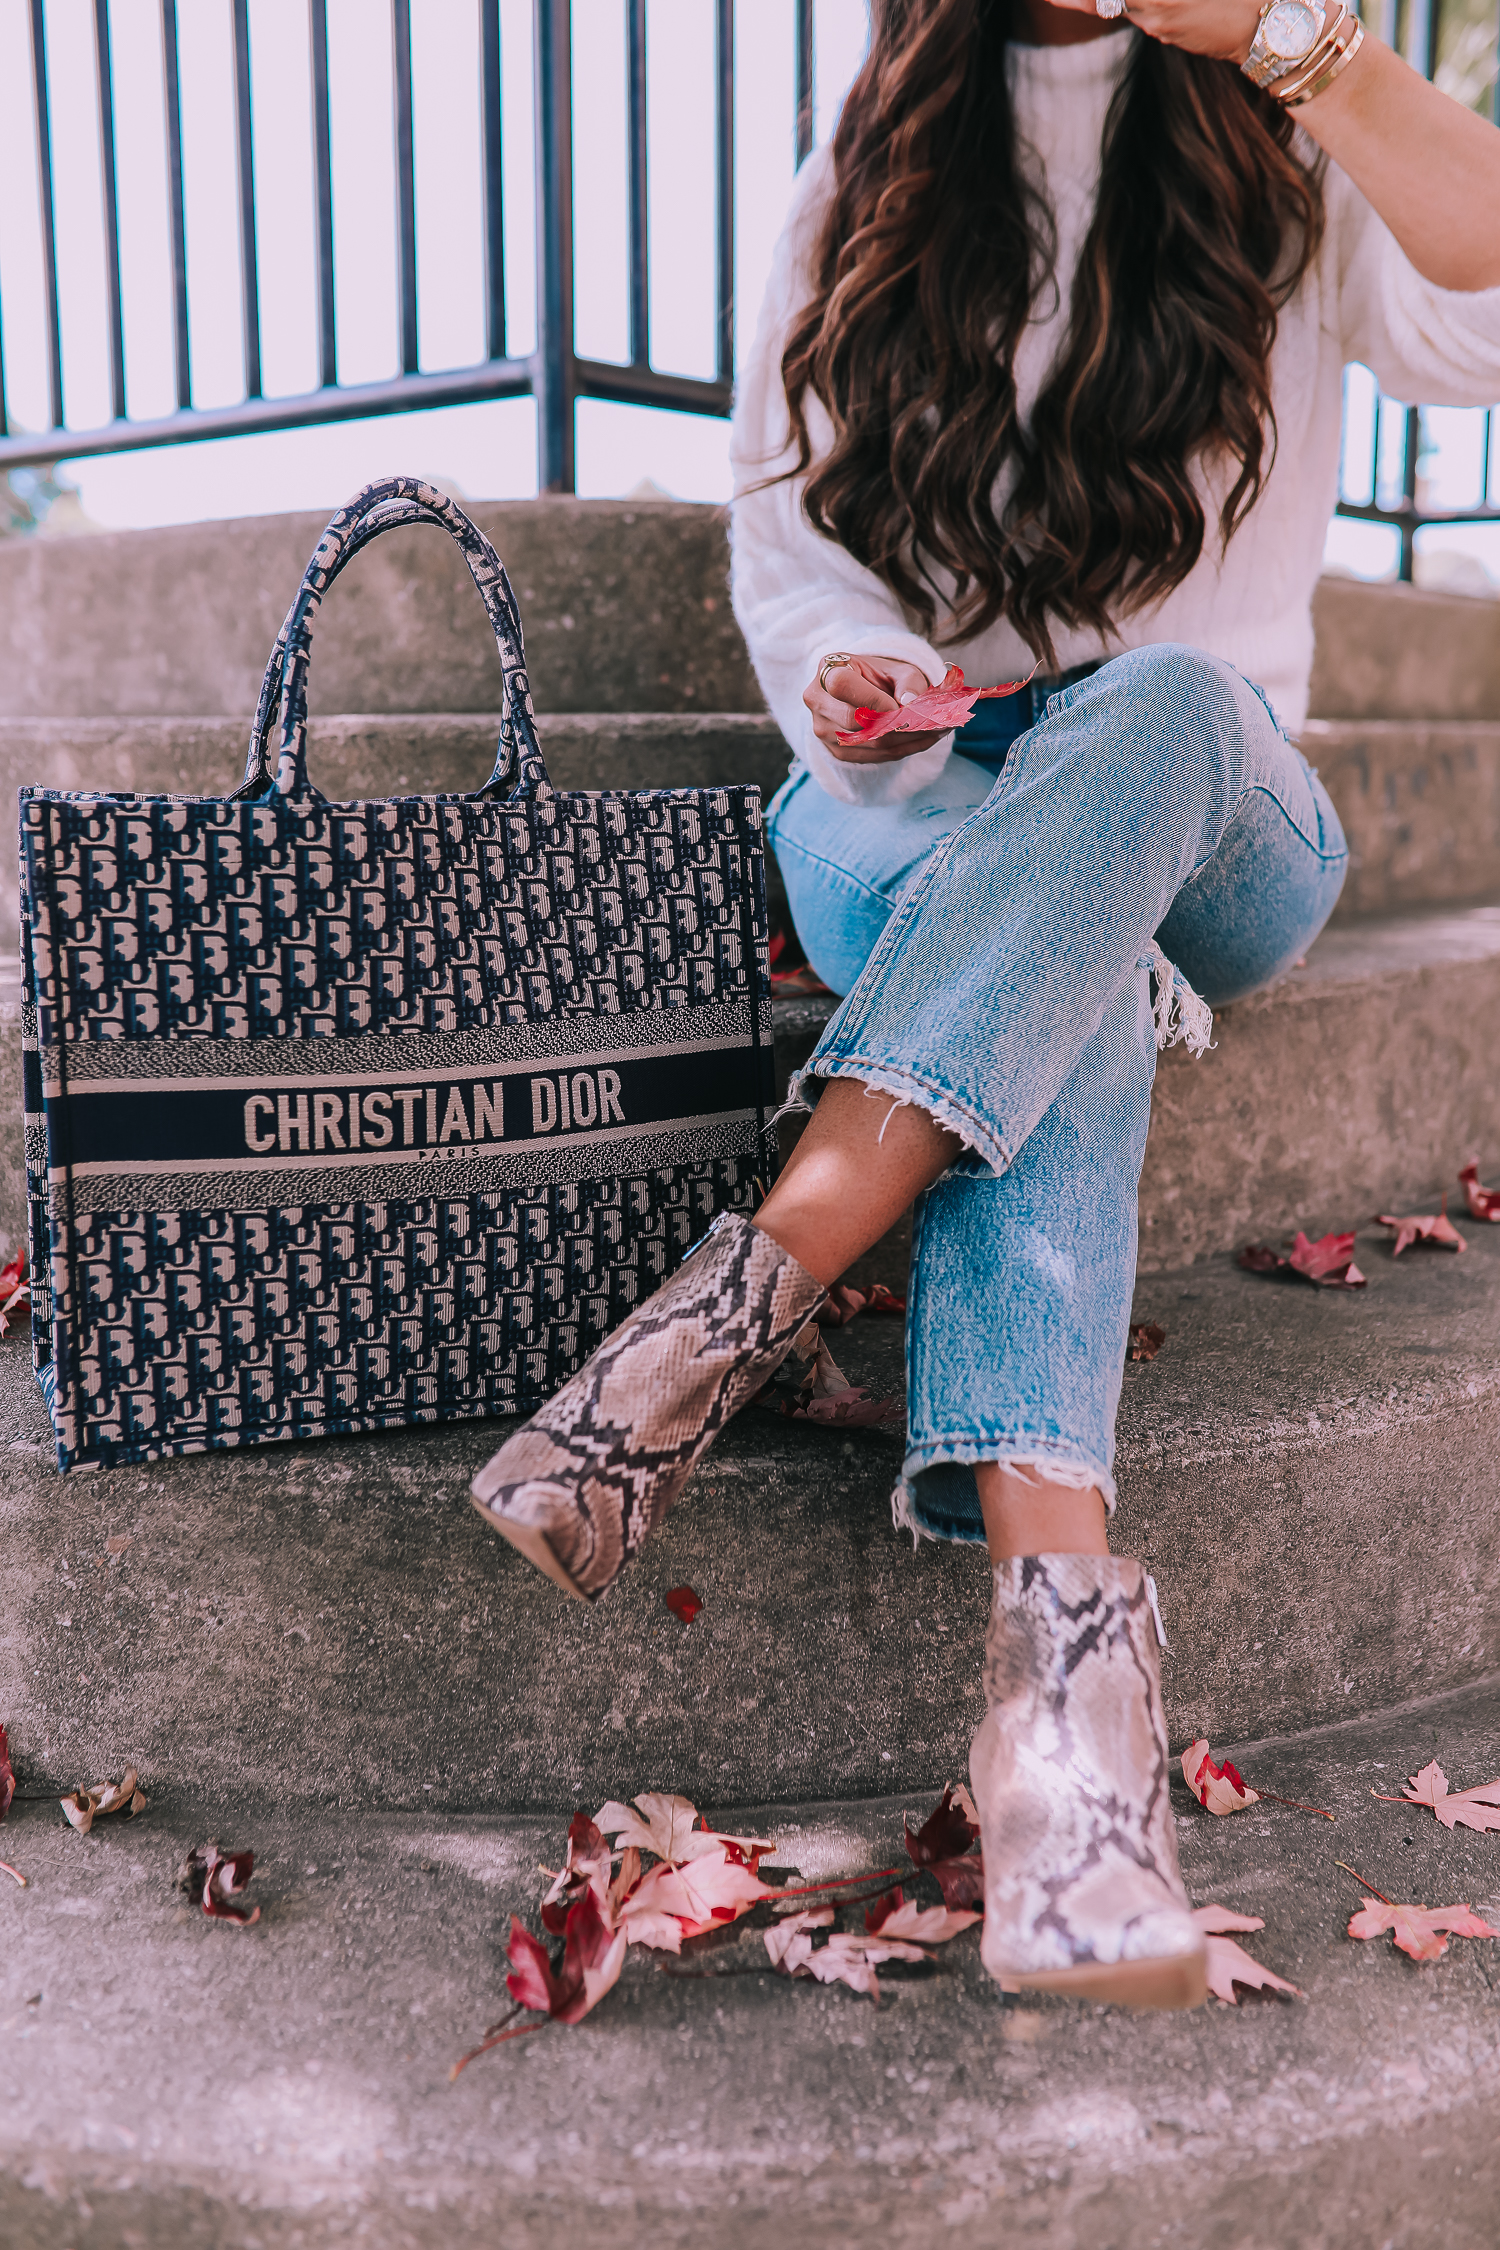 fall fashion outfits pinterest 2019, abercrombie mom jeans, Christian Dior book tote oblique navy, emily ann gemma, jessica simpson snake booties-2